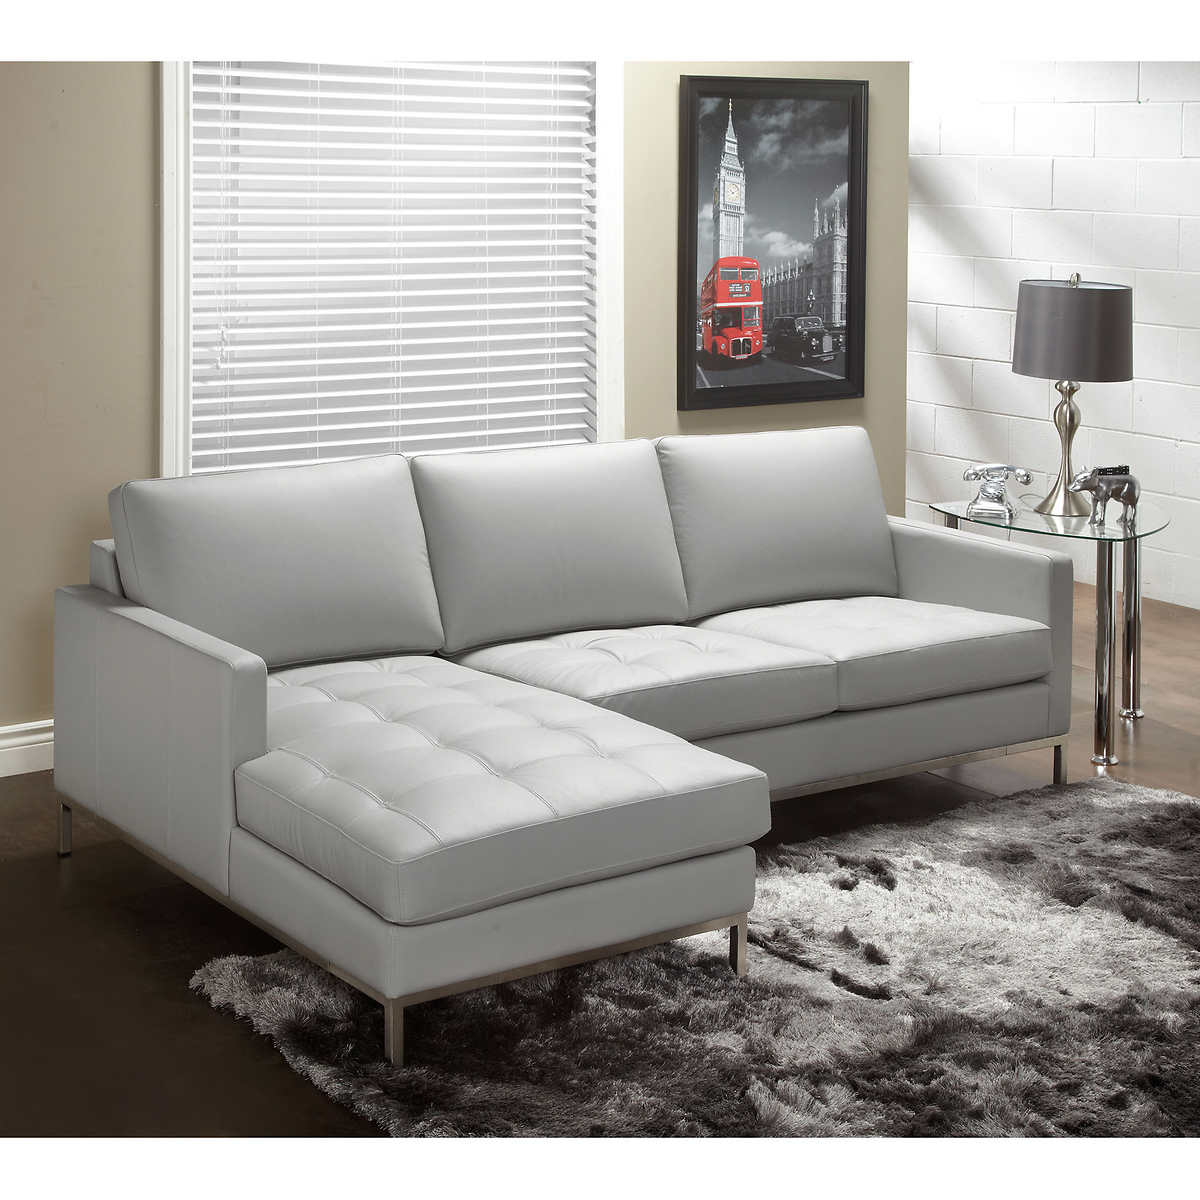 Sorrento Slate Top Grain Leather Living Room Sofa With Left Hand Facing Chaise